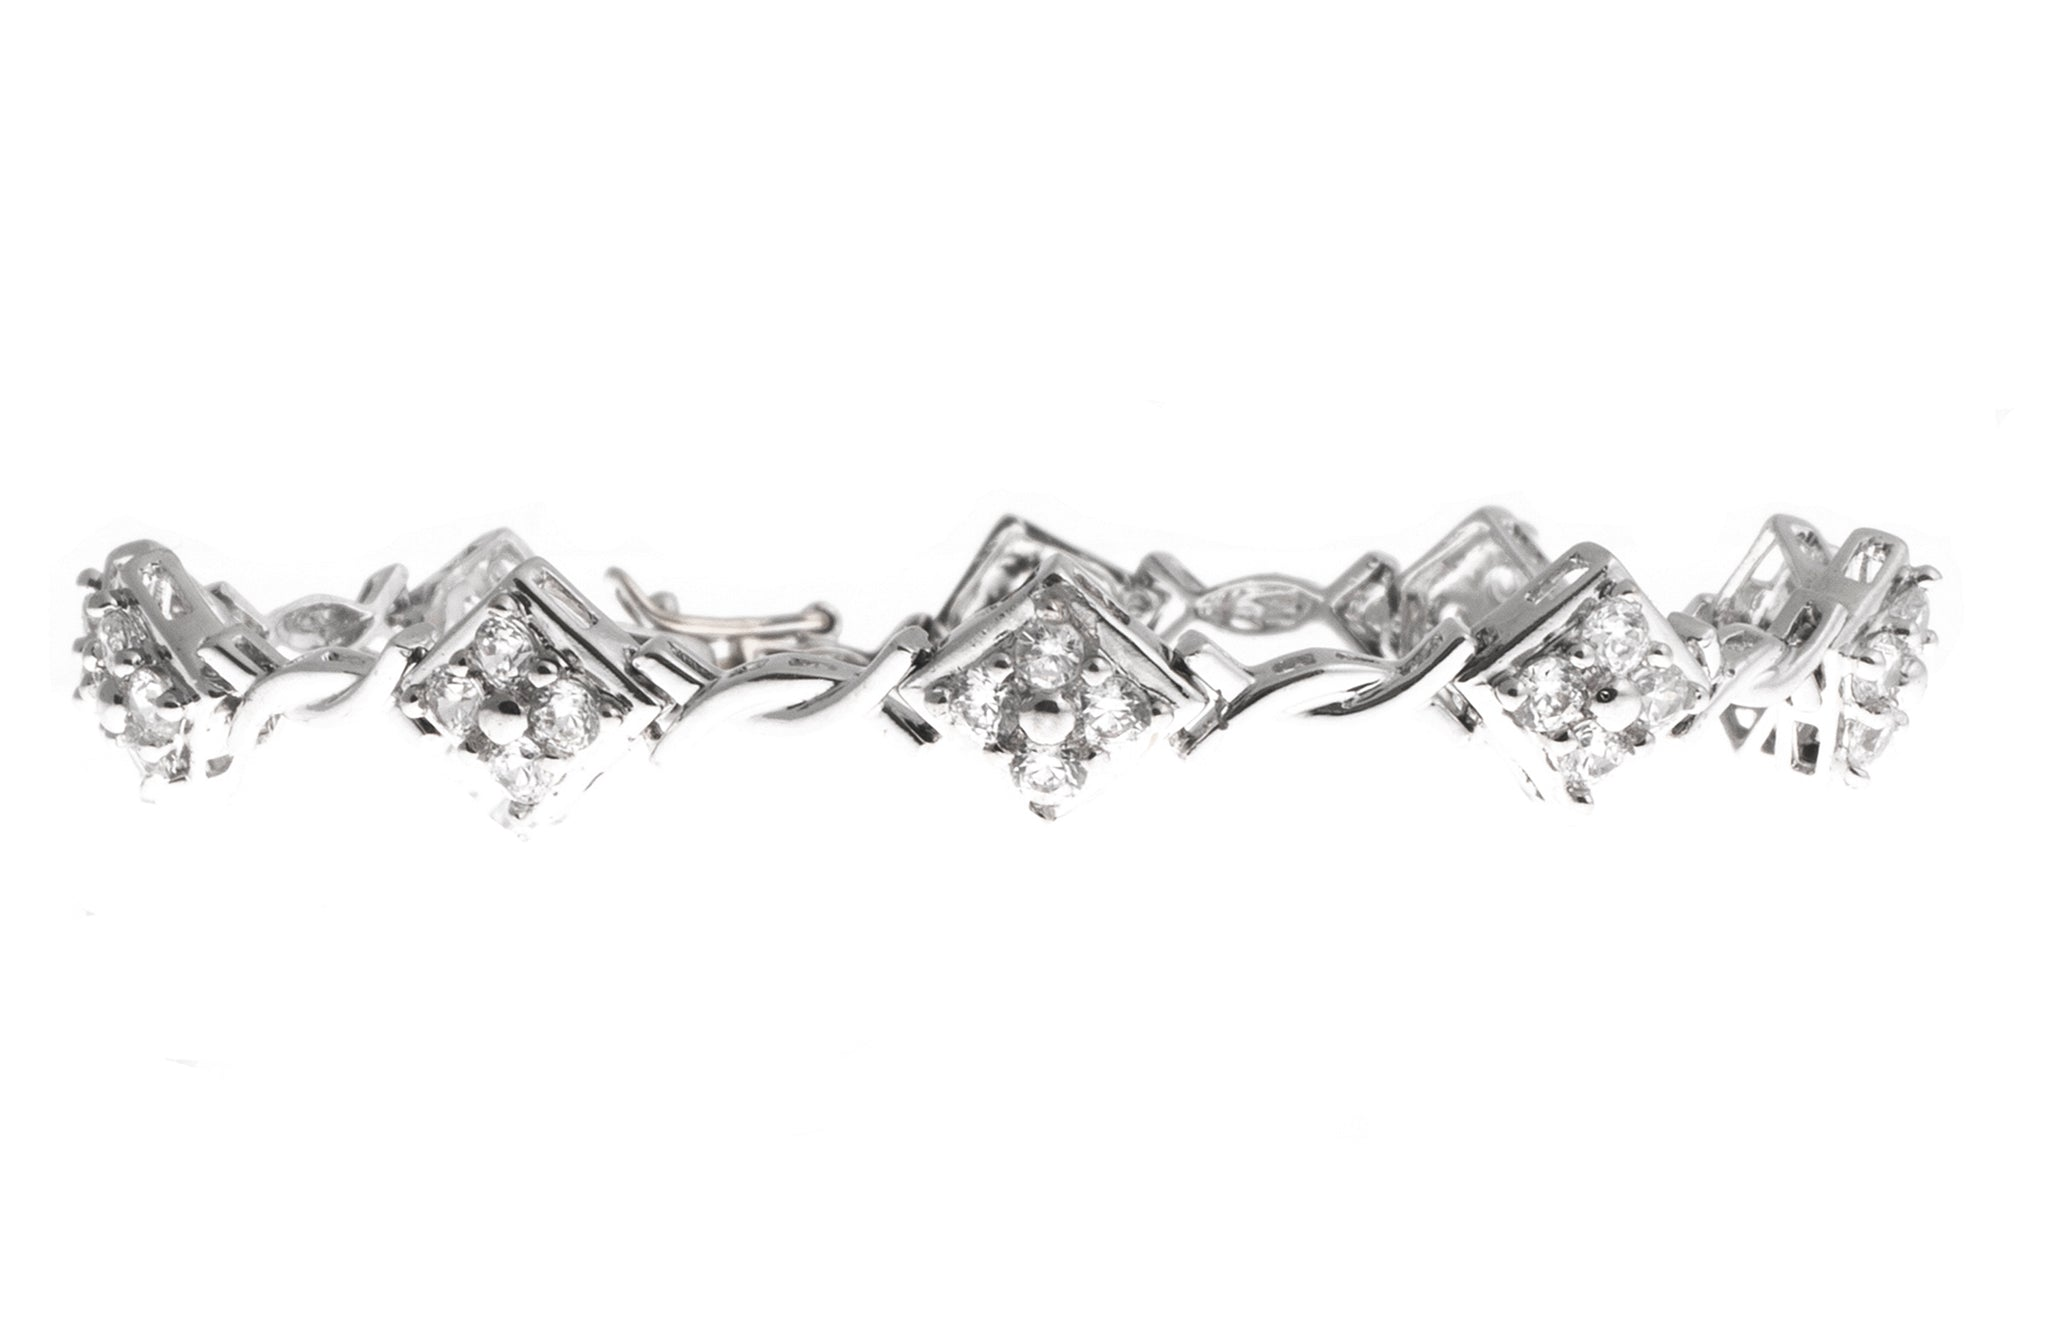 Stone Set 18ct White Gold Bracelet (13.5g) (LBR-1117)